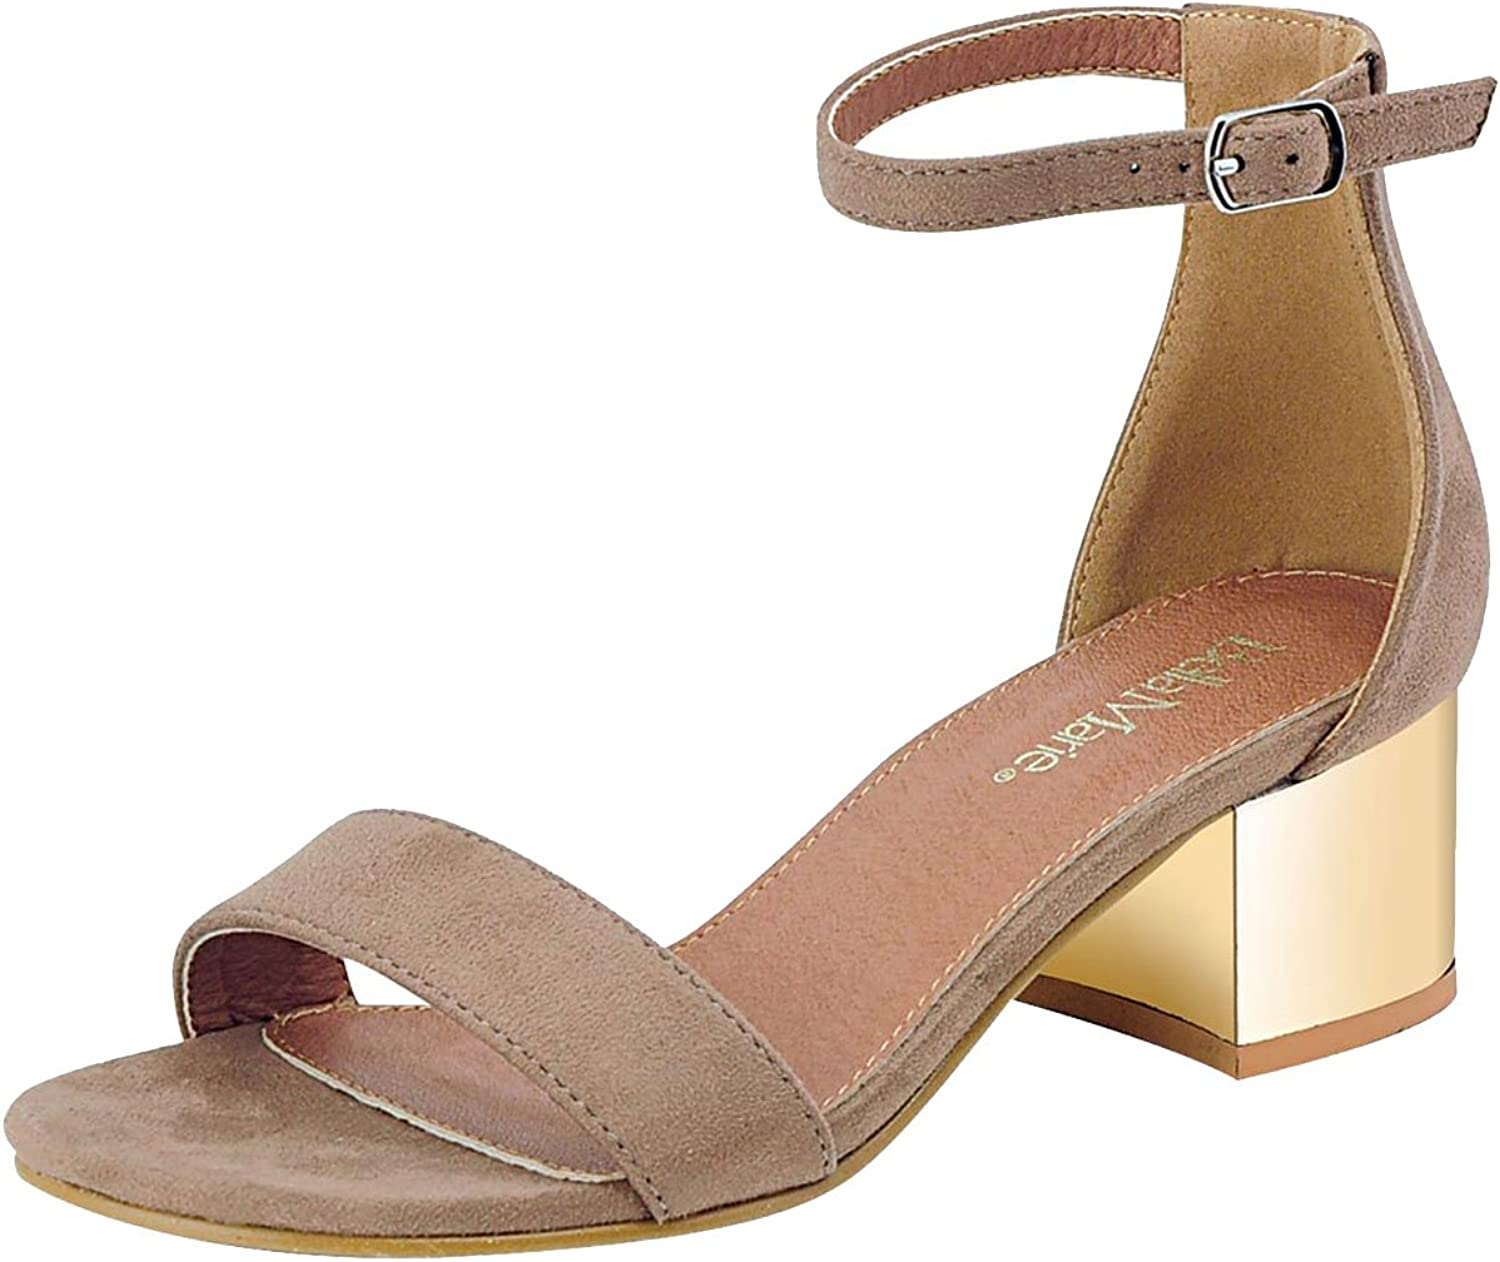 Bella Marie Women's Strappy Metallic Block Heel Sandal